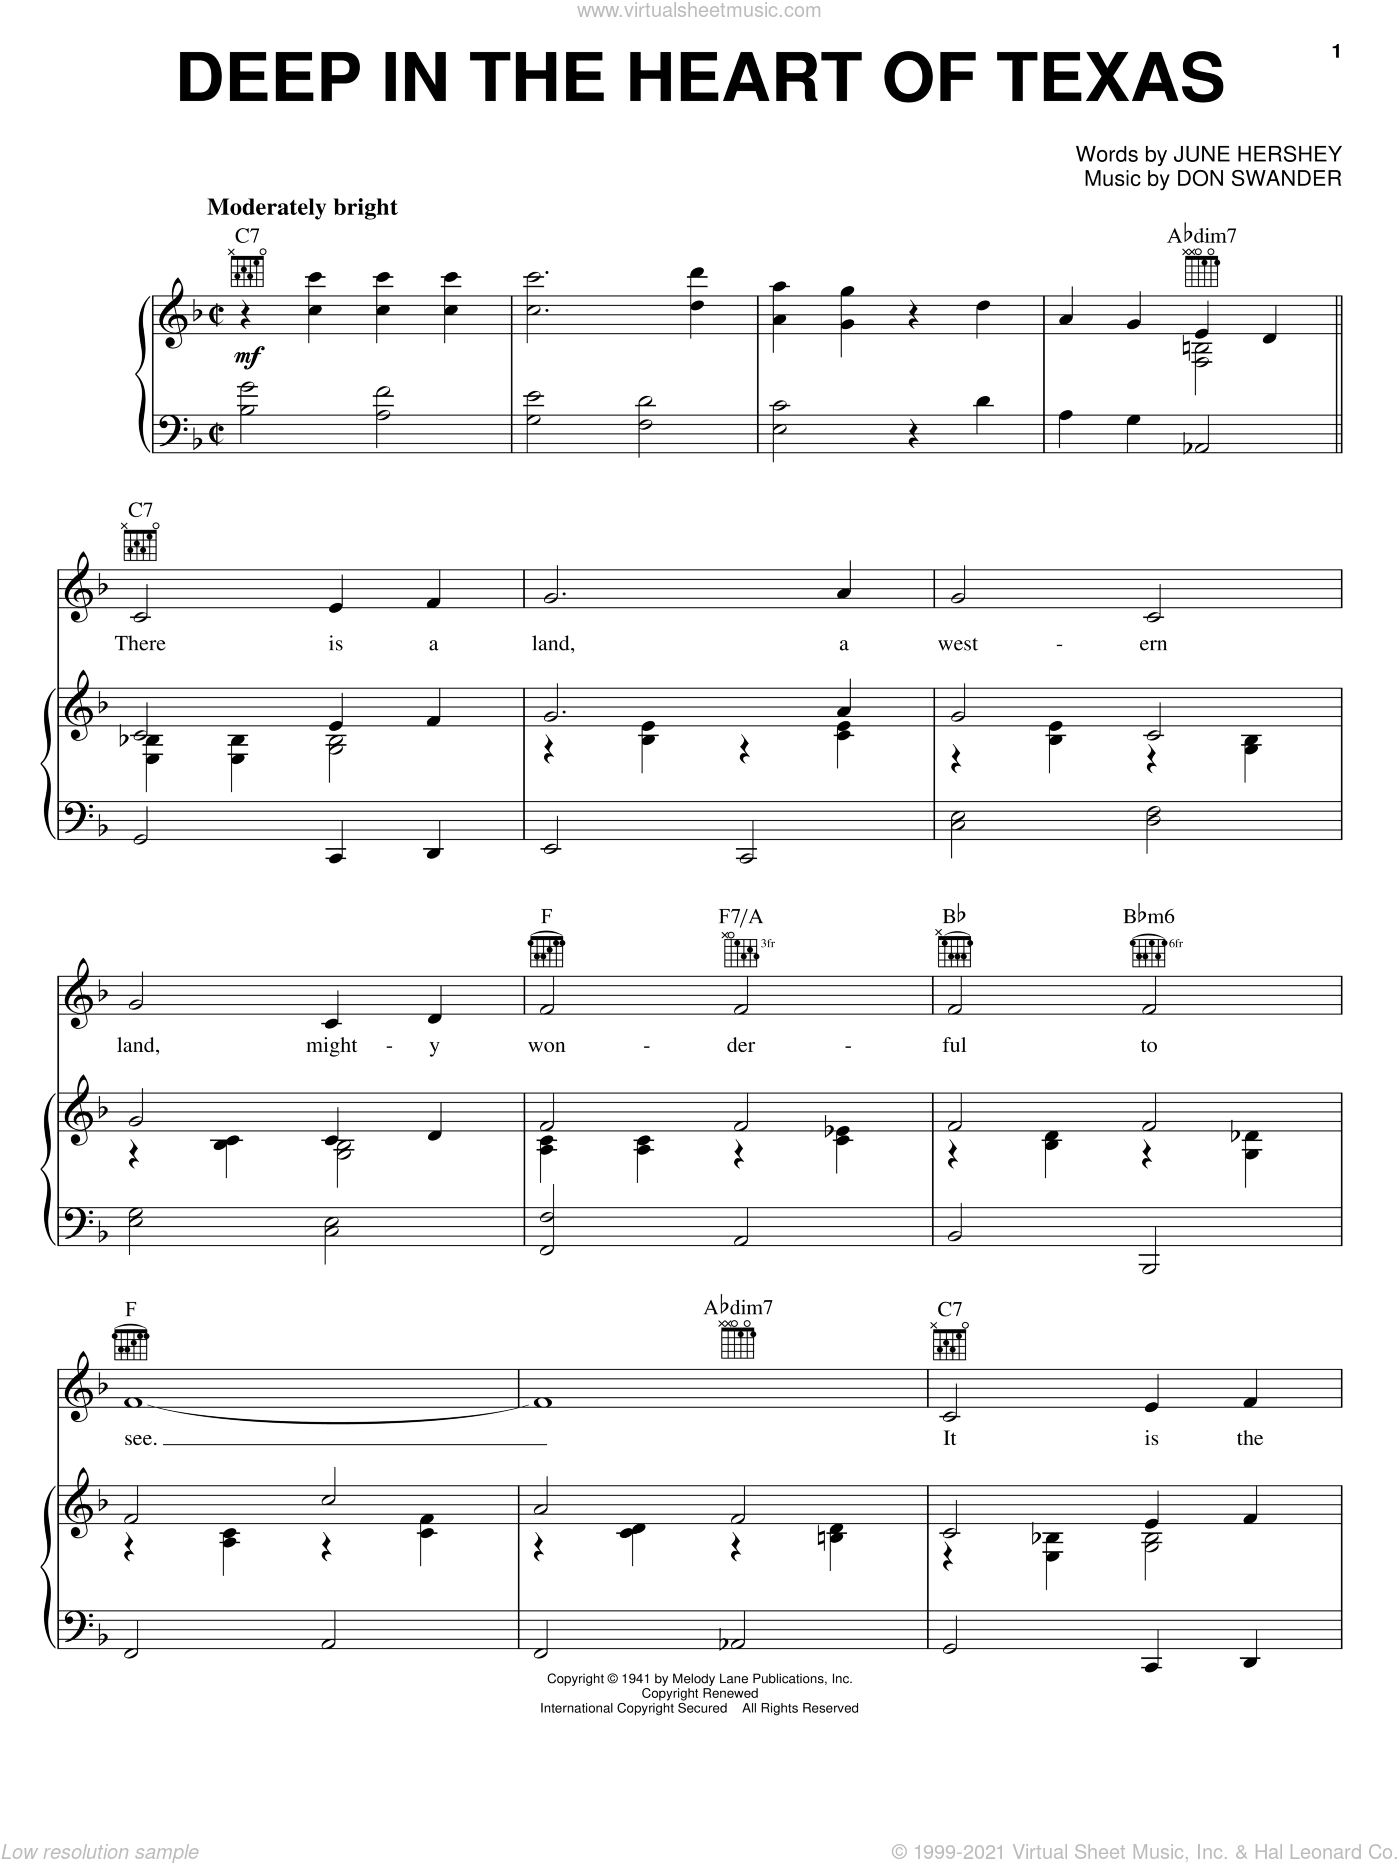 Deep In The Heart Of Texas sheet music for voice, piano or guitar by June Hershey